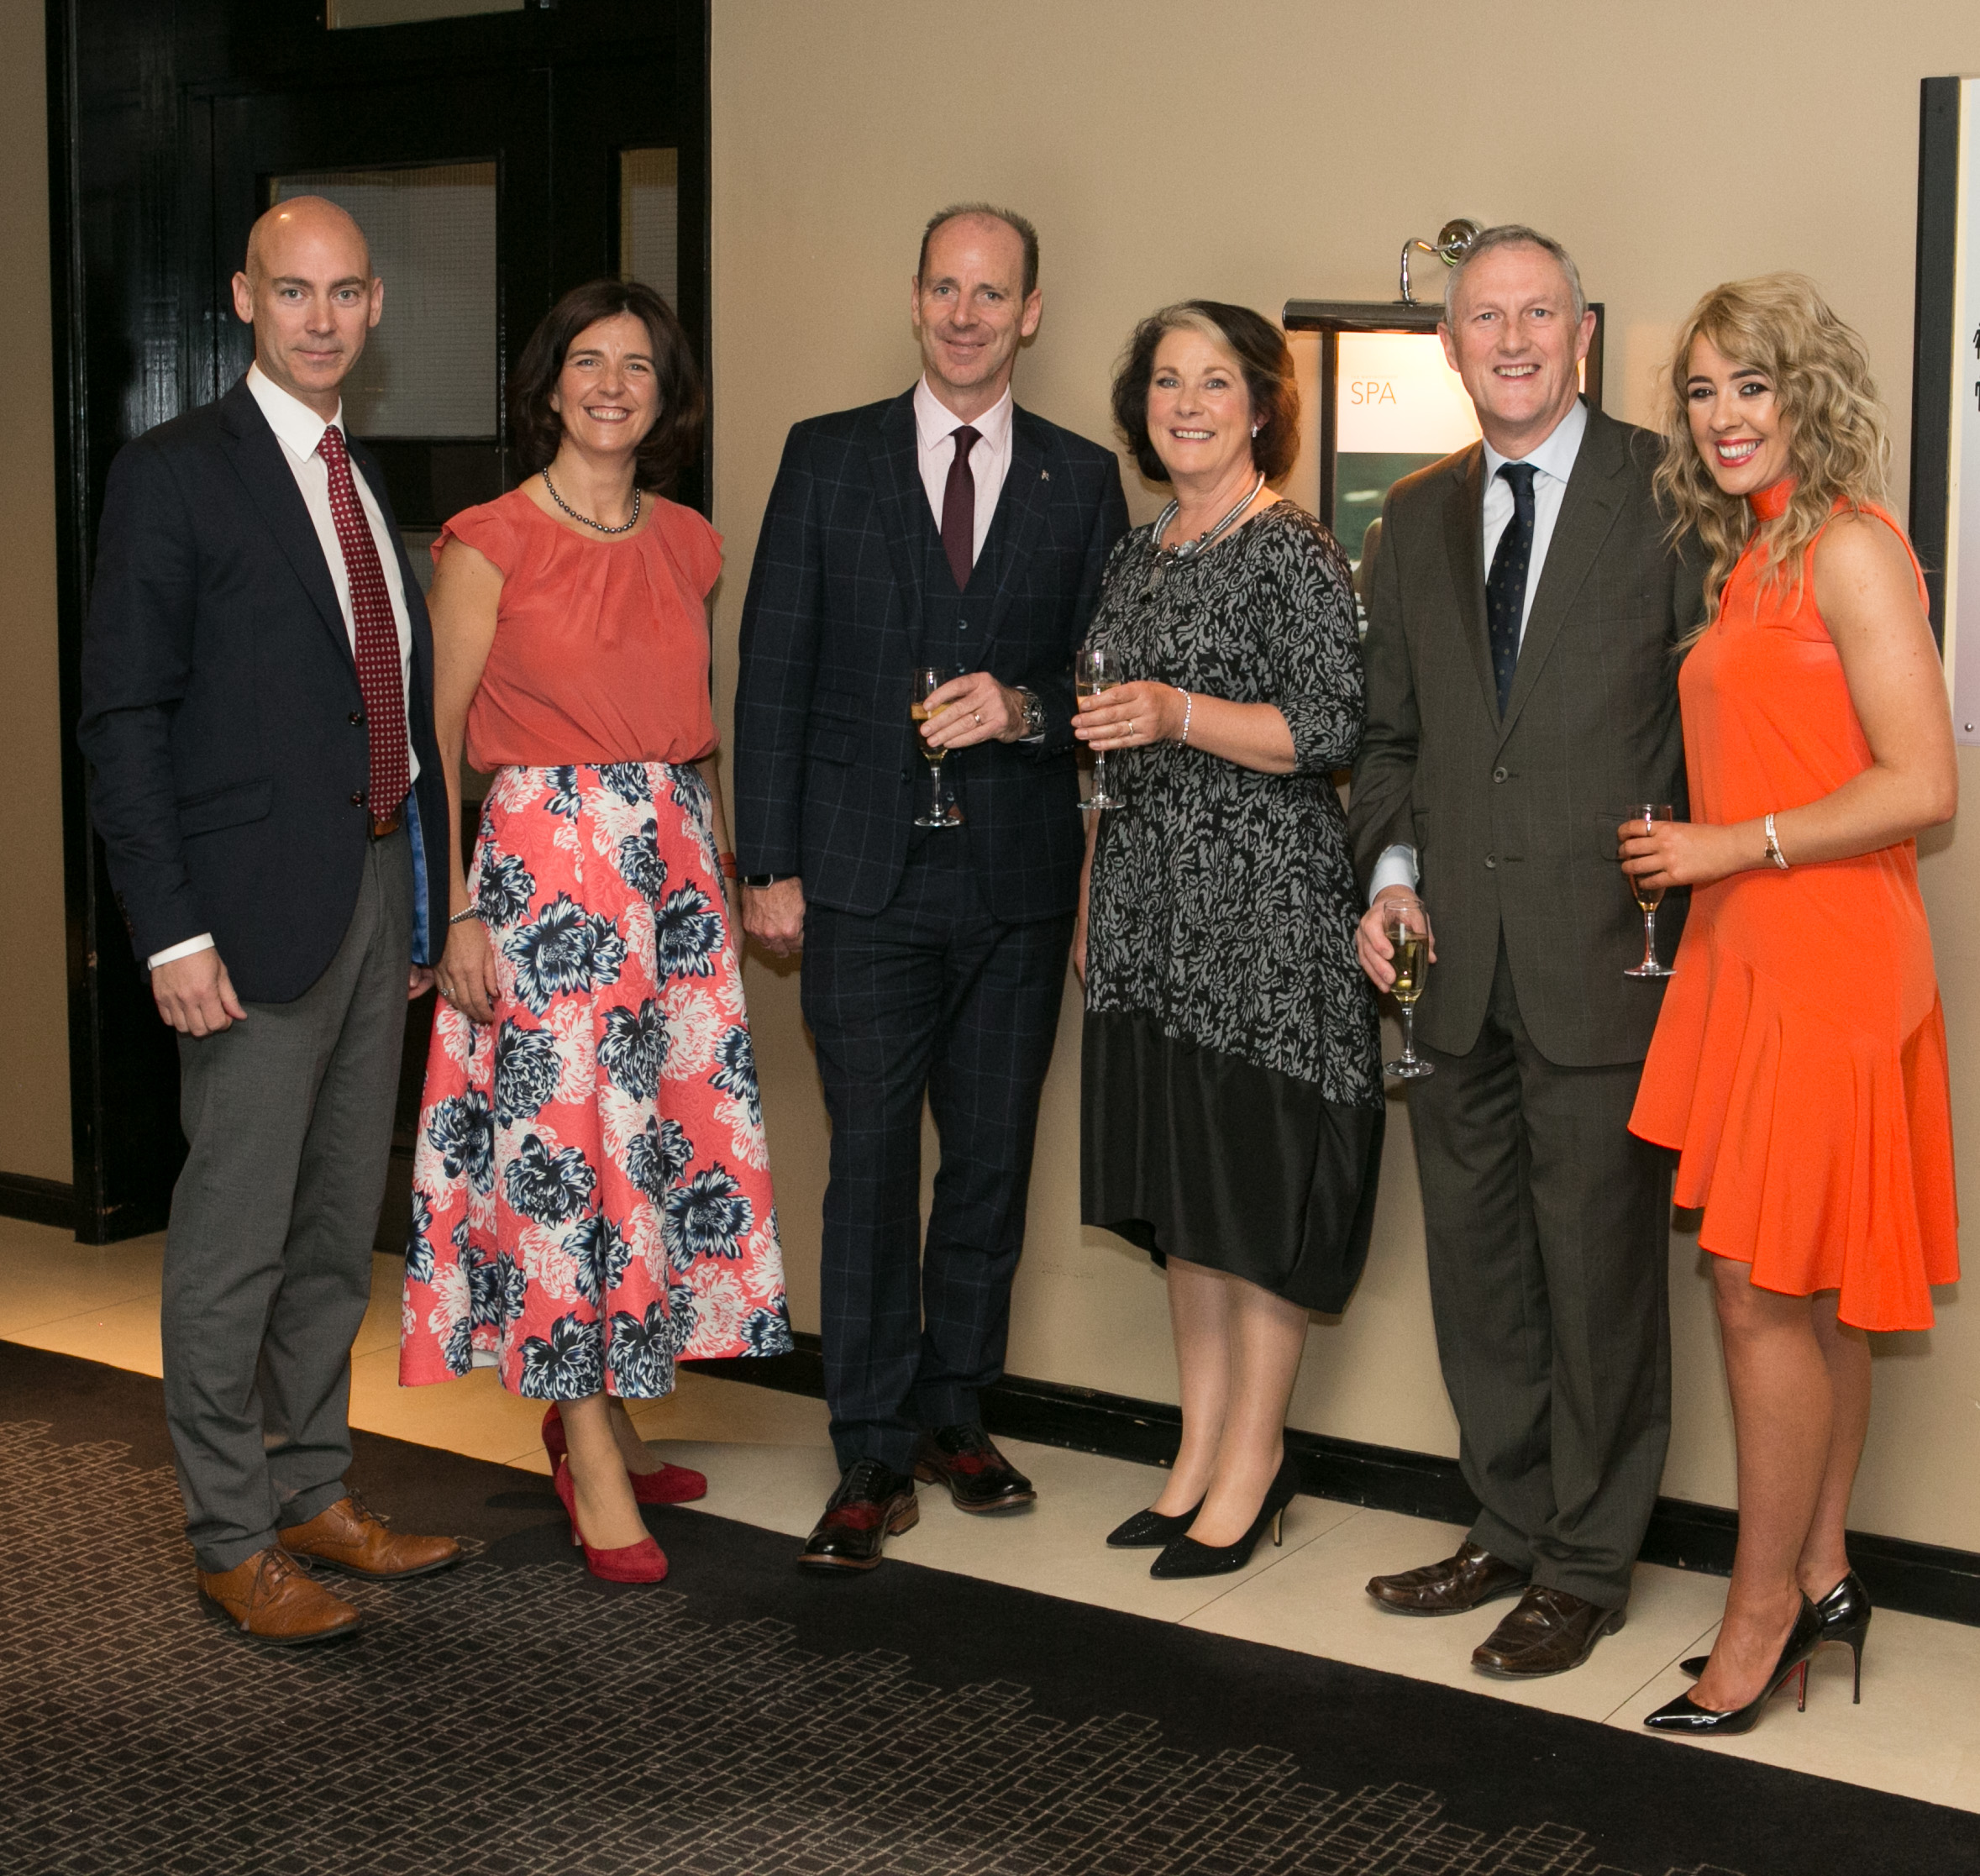 Aer Lingus staff members; Seamus Cooke, Rachel Keating, Peter O'Shea, Geraldine Gokul, John Clancy and Jo O'Riordan attending the Annual Aer Lingus Autumn Lunch in aid of Cork ARC Cancer Support House.